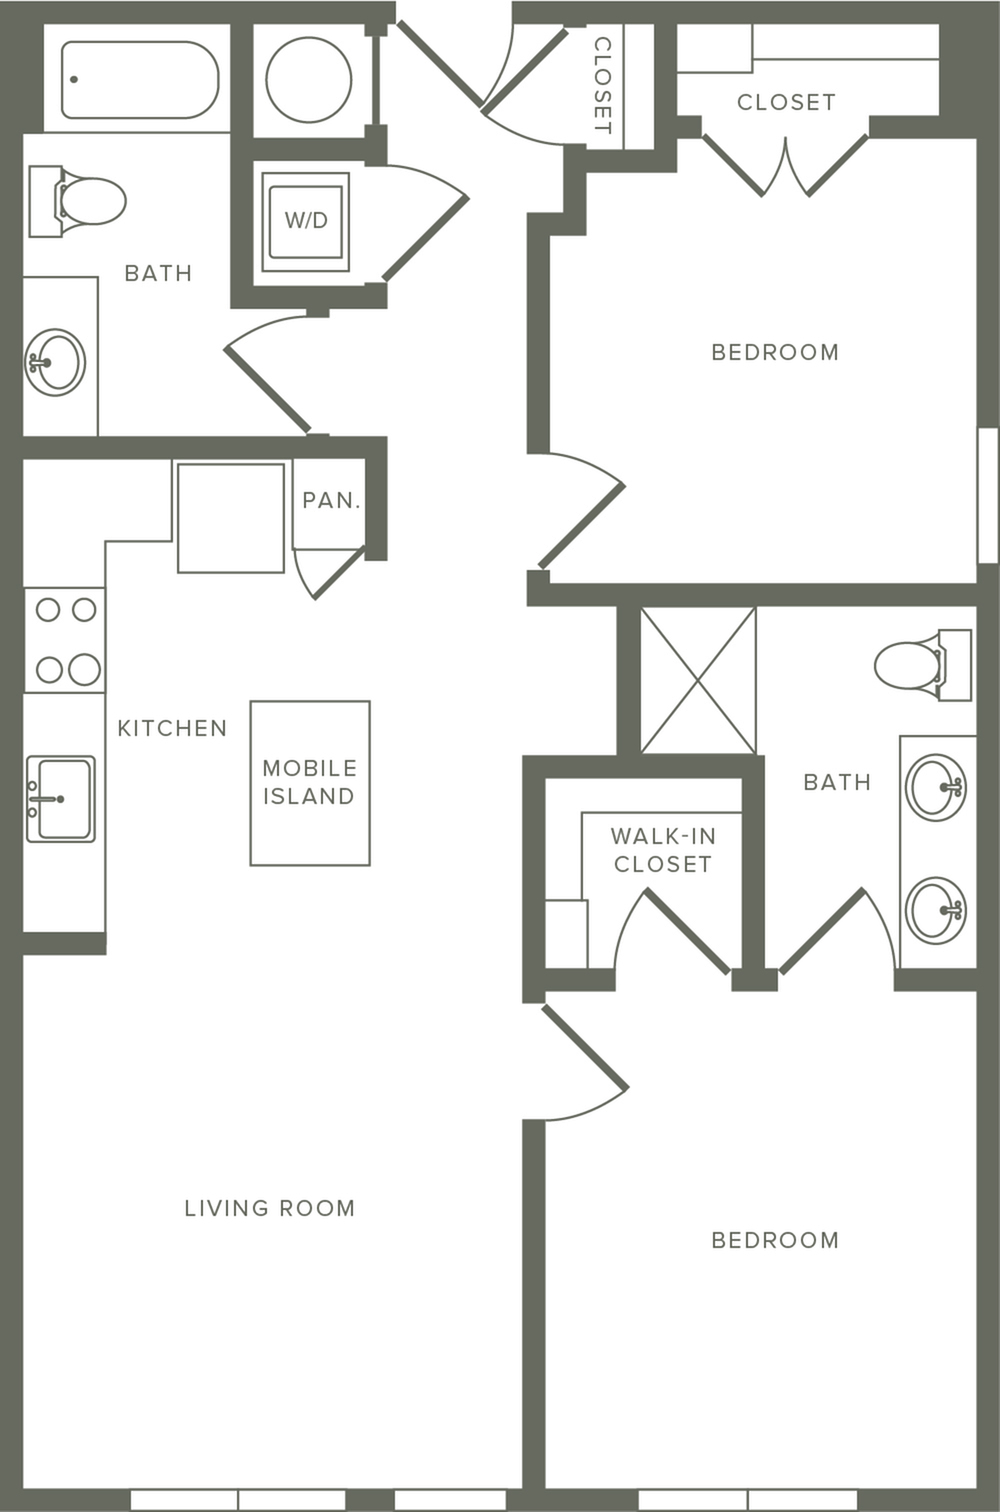 950 square foot two bedroom two bath apartment floorplan image